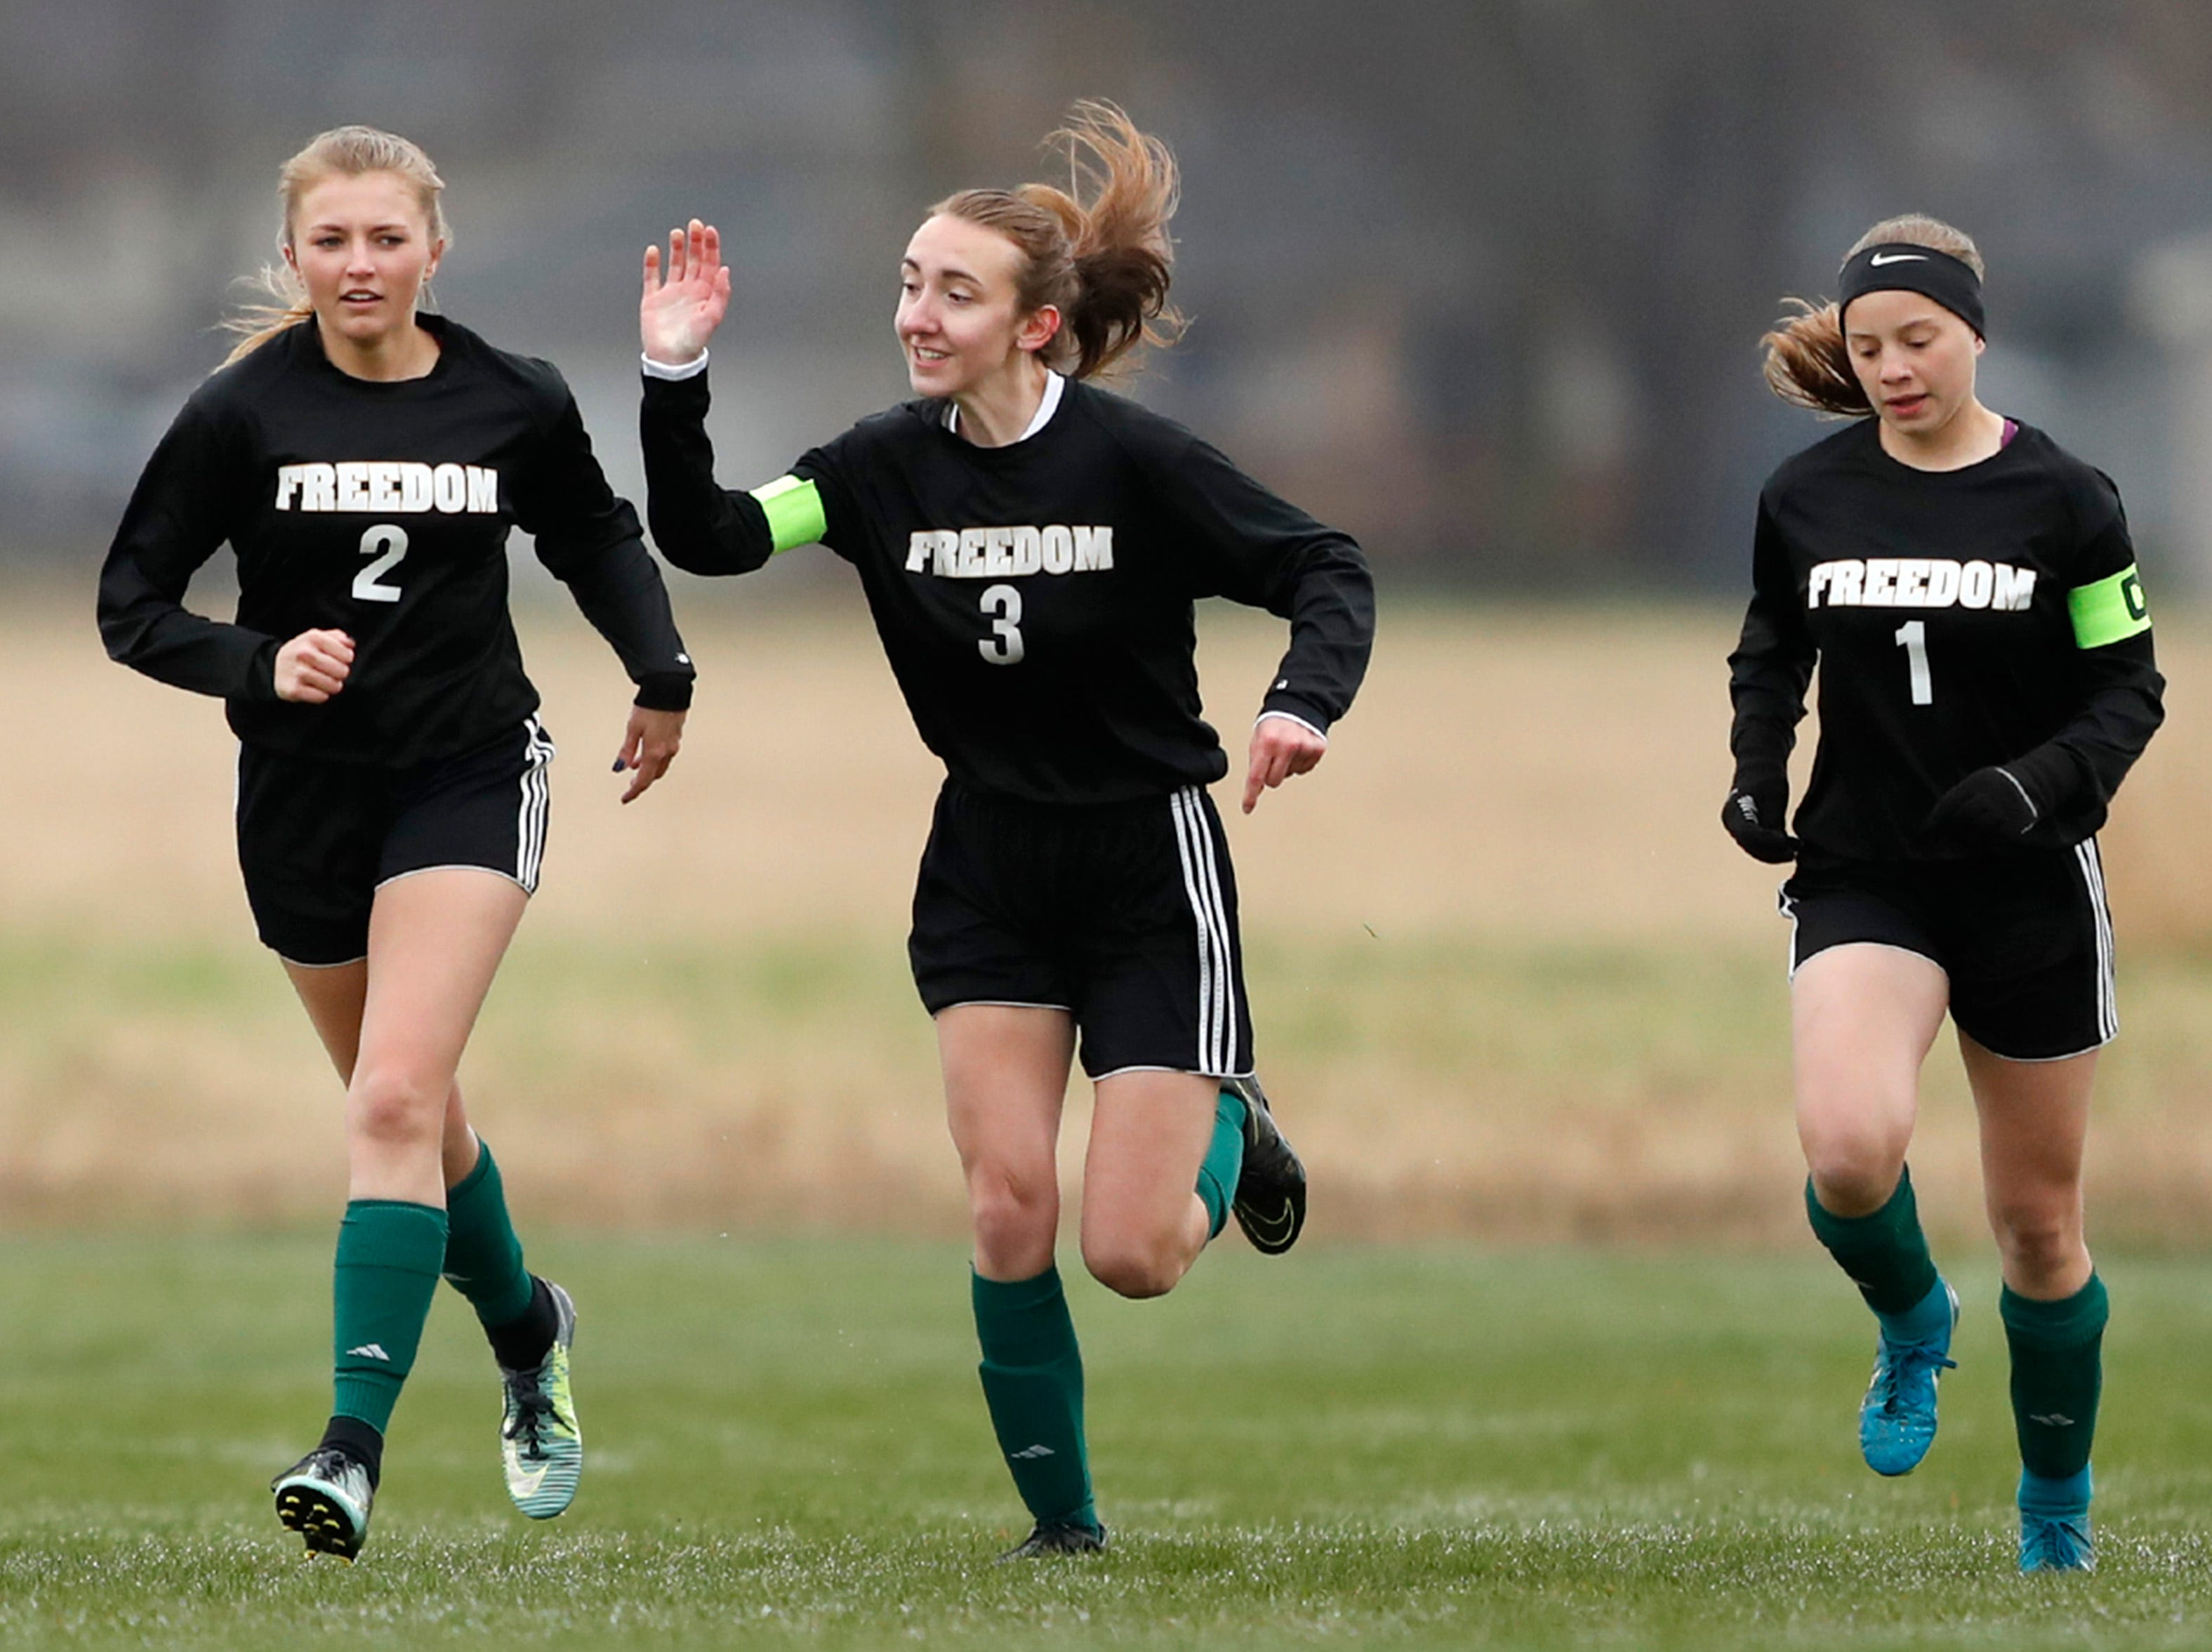 Freedom High School's Imigin Coenen (2) celebrates with teammates Sam Baumgartner (3) and Rosa Lezotte (1) after scoring the game's first goal against Waupaca High School Monday, April 29, 2019, in Freedom, Wis. Freedom won the game 11-0.Danny Damiani/USA TODAY NETWORK-Wisconsin